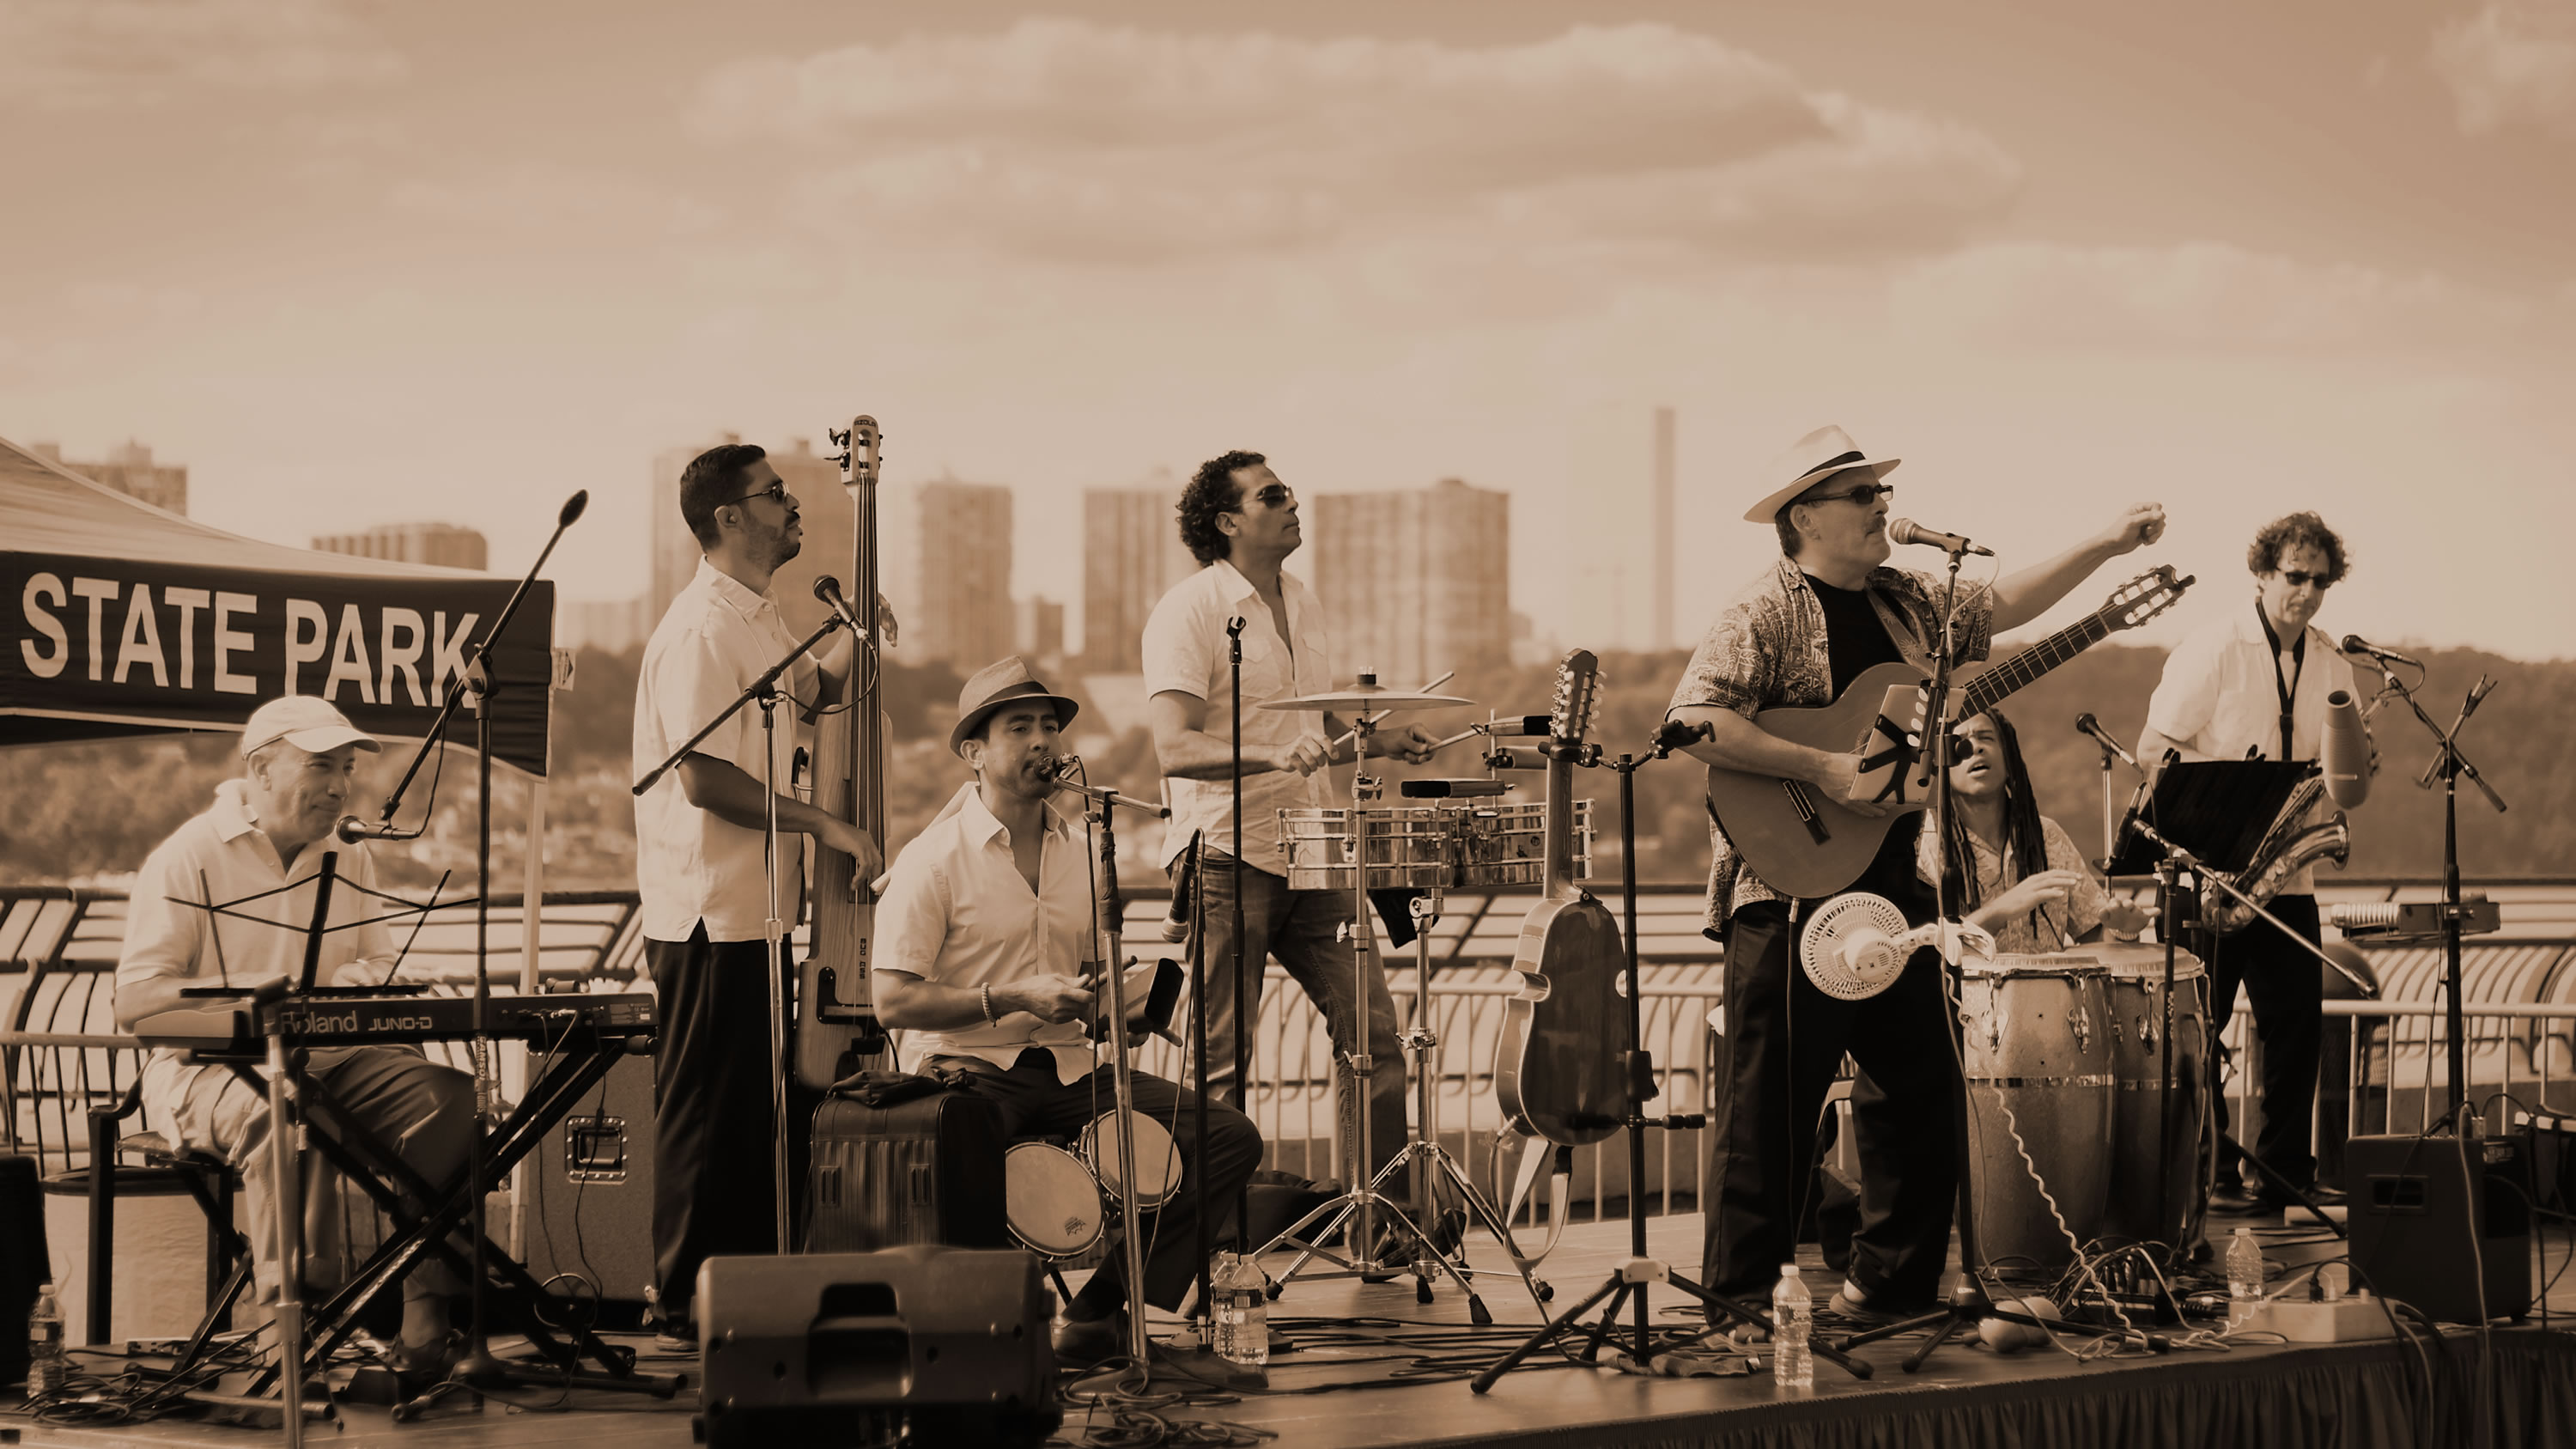 Sonido-Costeno-Latin-Band-Riverbank-Staet-Park-Washington-Heights-NYC-Outdoor-Summer-Music-Series-concert